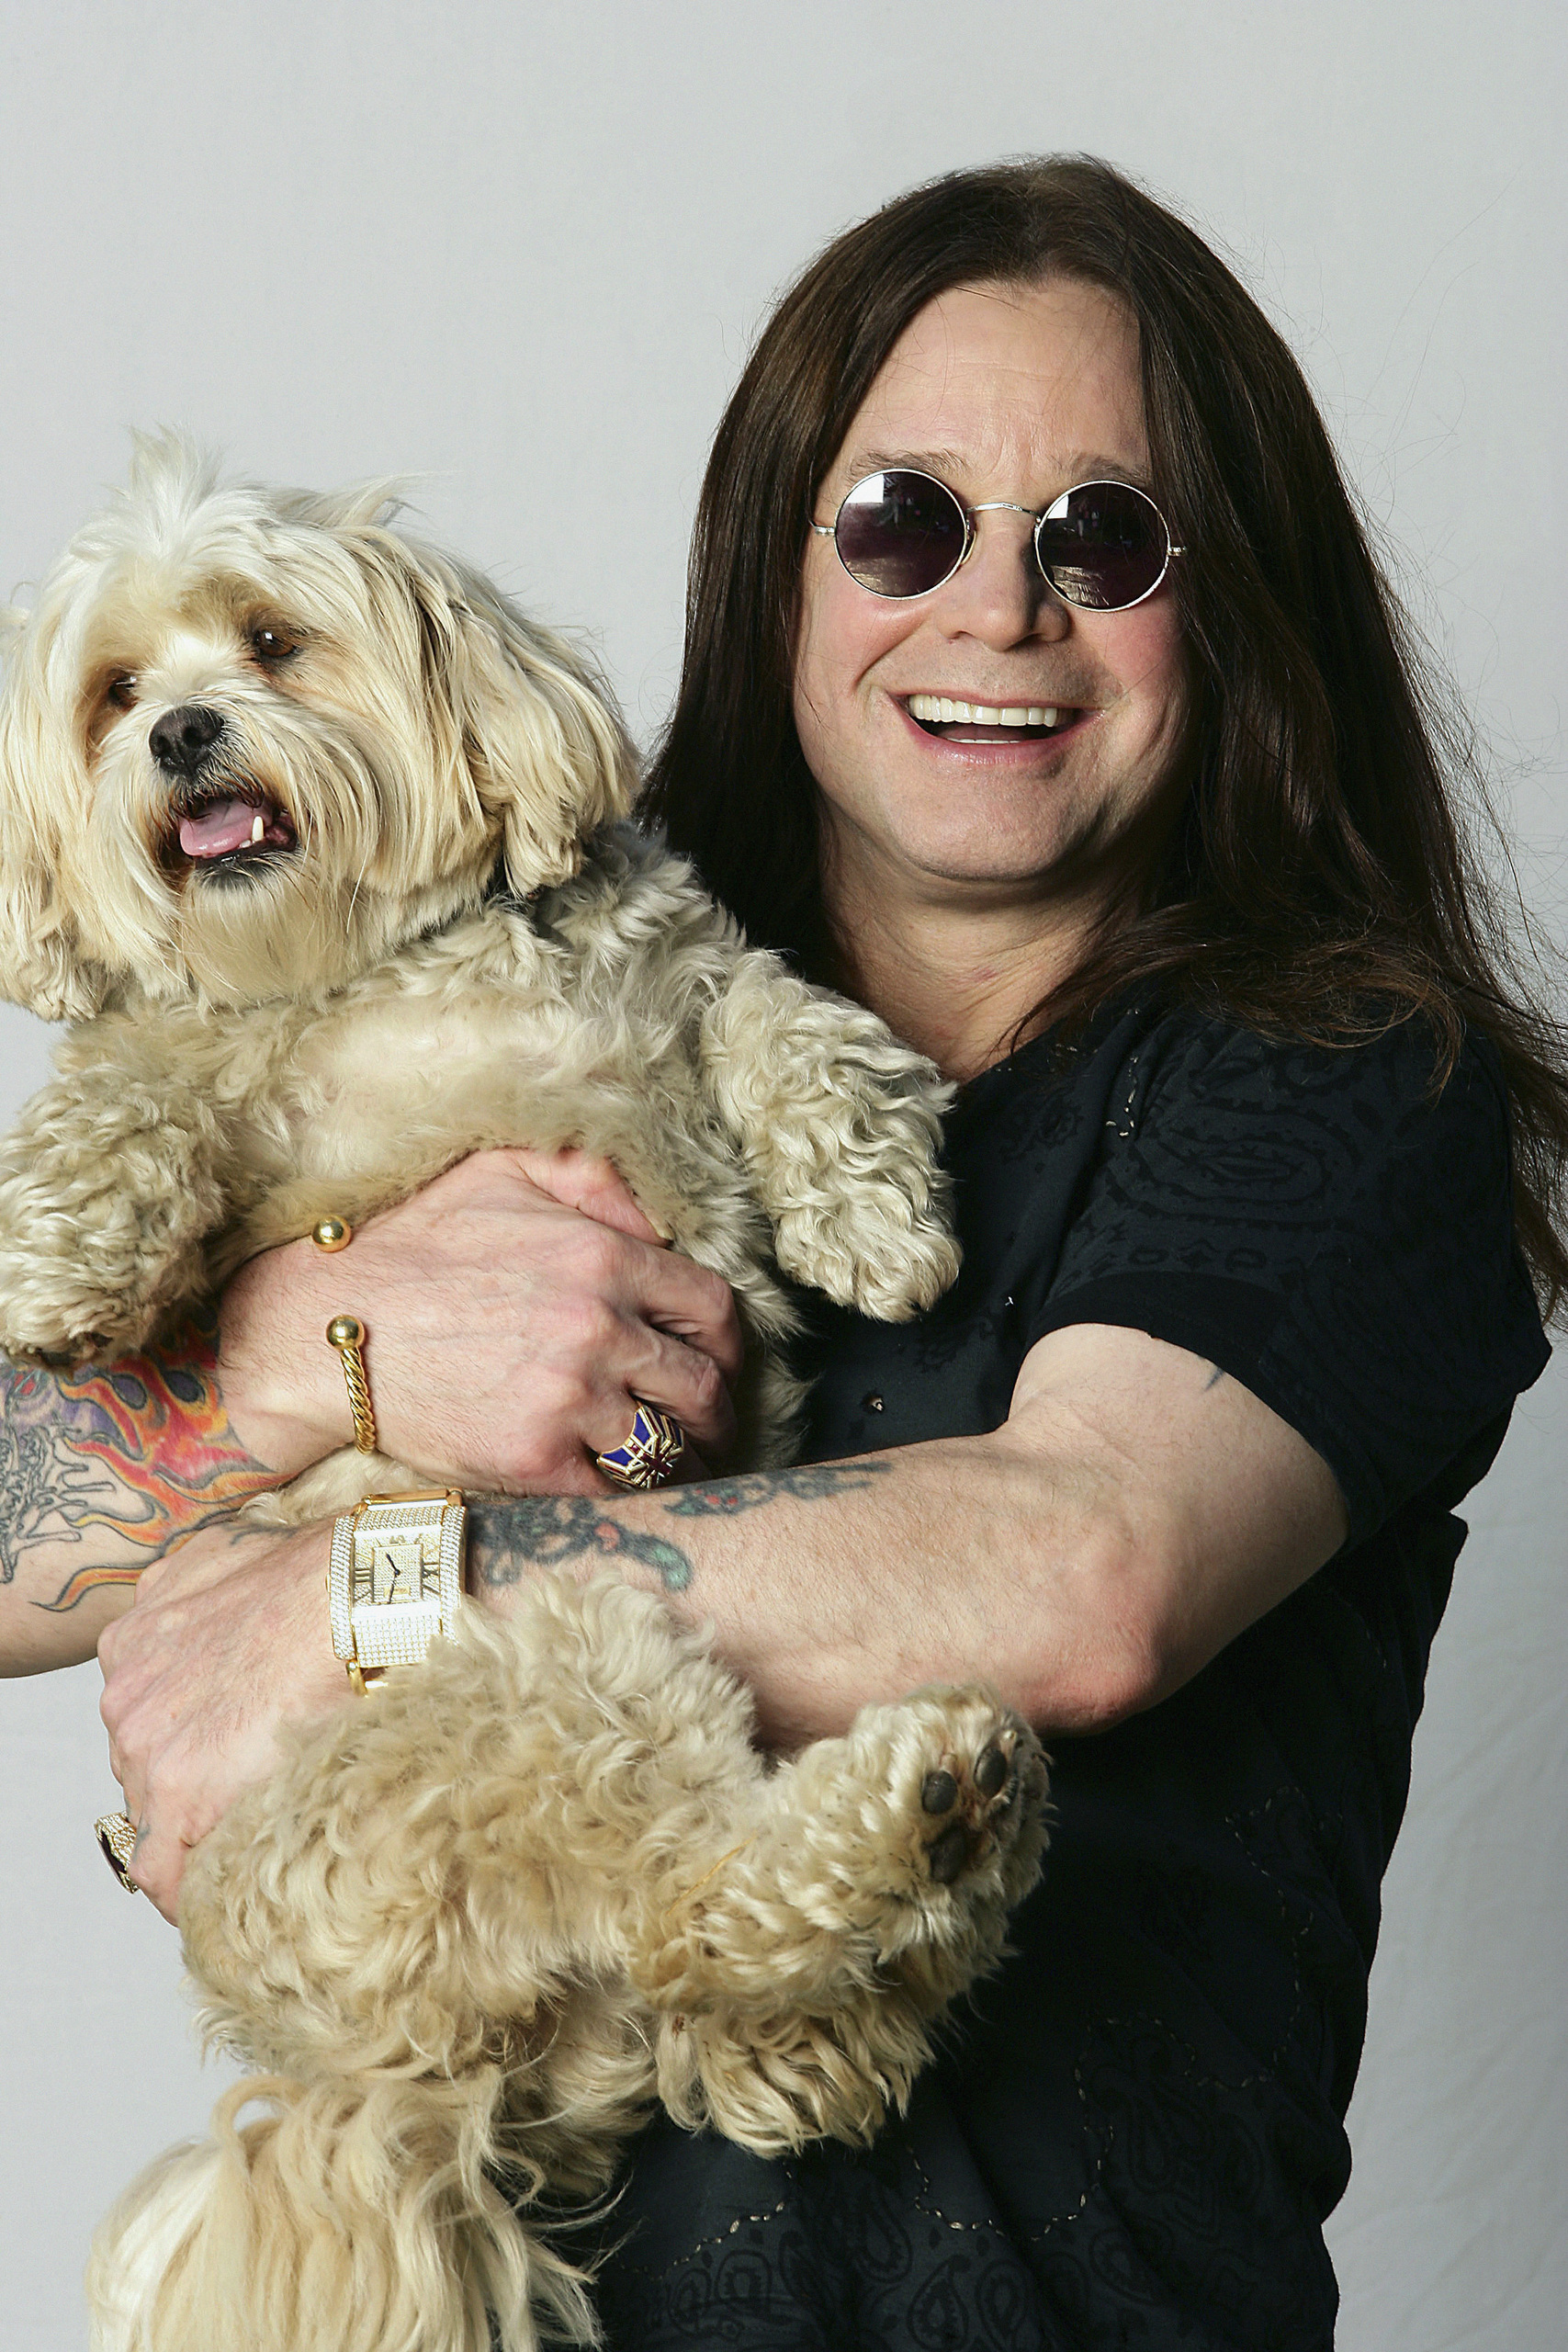 Ozzy Osbourne Wallpapers High Quality Download Free